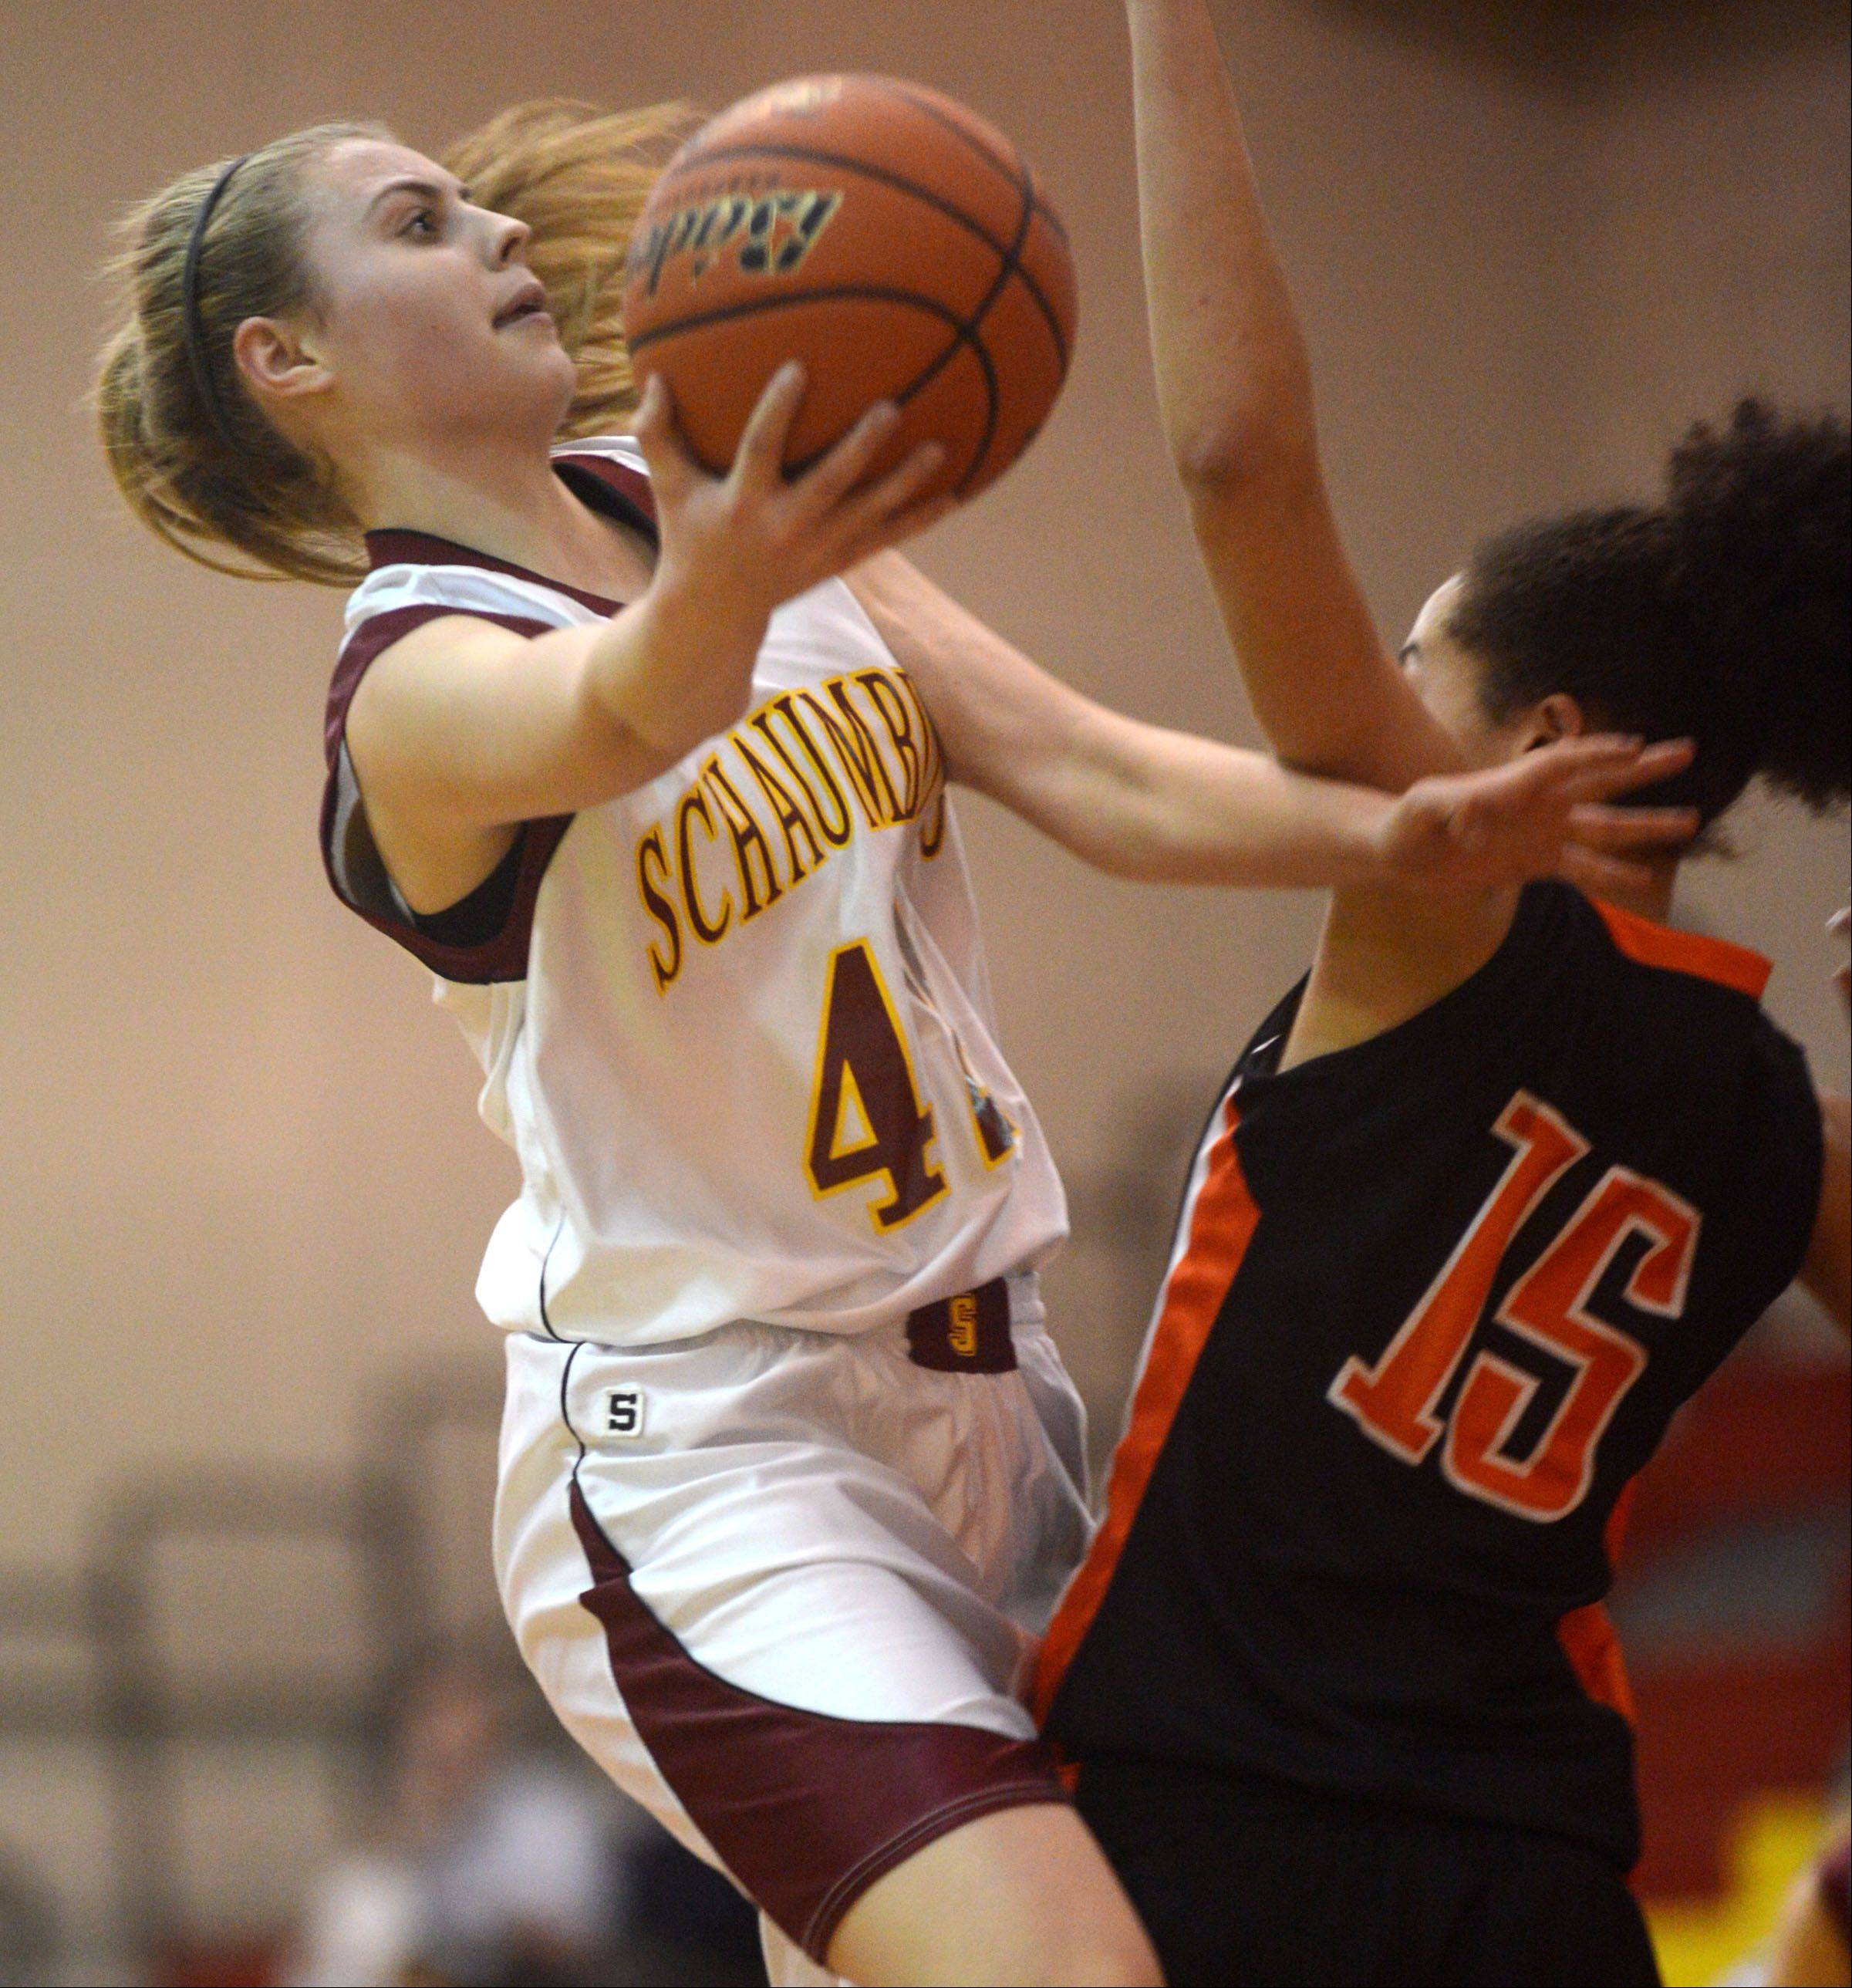 St. Charles East's Kyra Washington, right, tries to stop Schaumburg's Mallory Gerber, left from scooping the ball to the hoop during a varsity girls basketball game at Schaumburg High School on Monday evening.